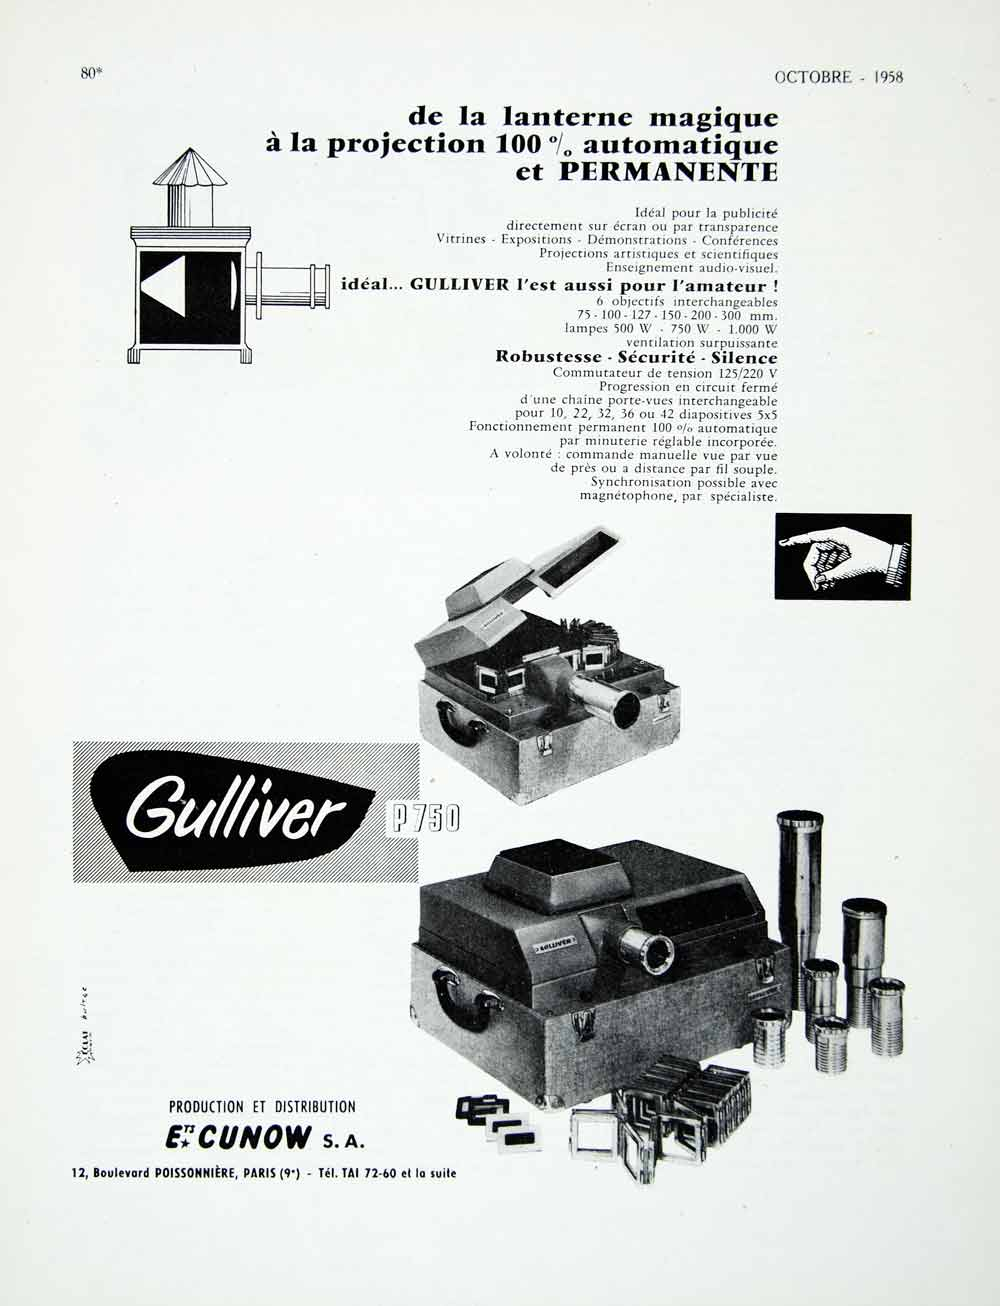 1958 Ad Magic Lantern Projector Gulliver Cunow P750 Slides Fifties VEN1